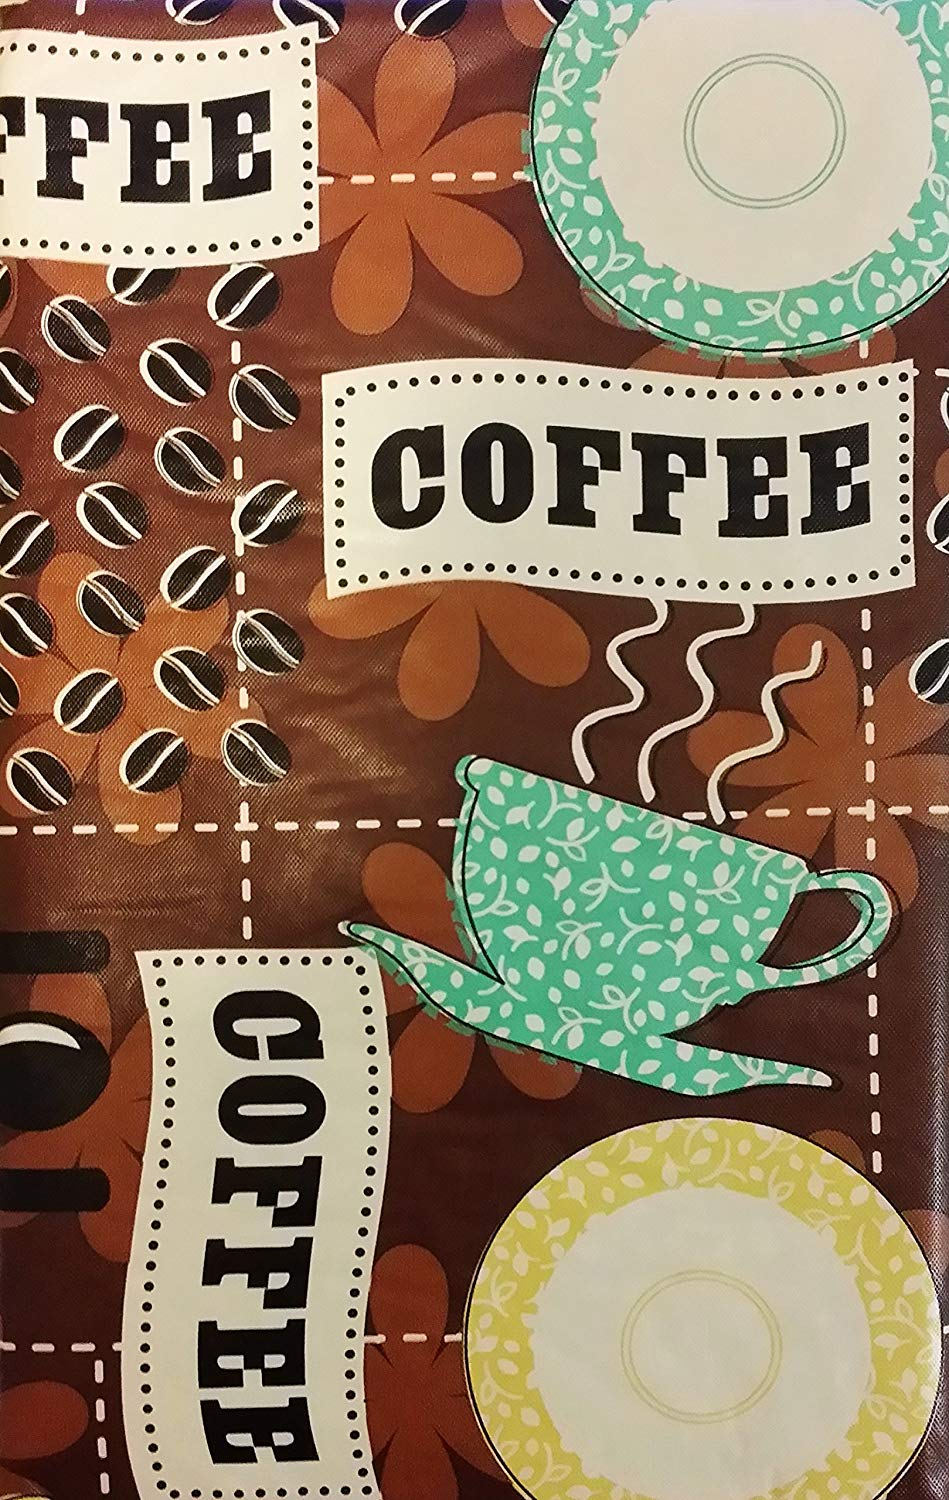 Coffee Beans Cups brown vinyl flannel backed tablecloth tablecover 52 x 90 Oblong